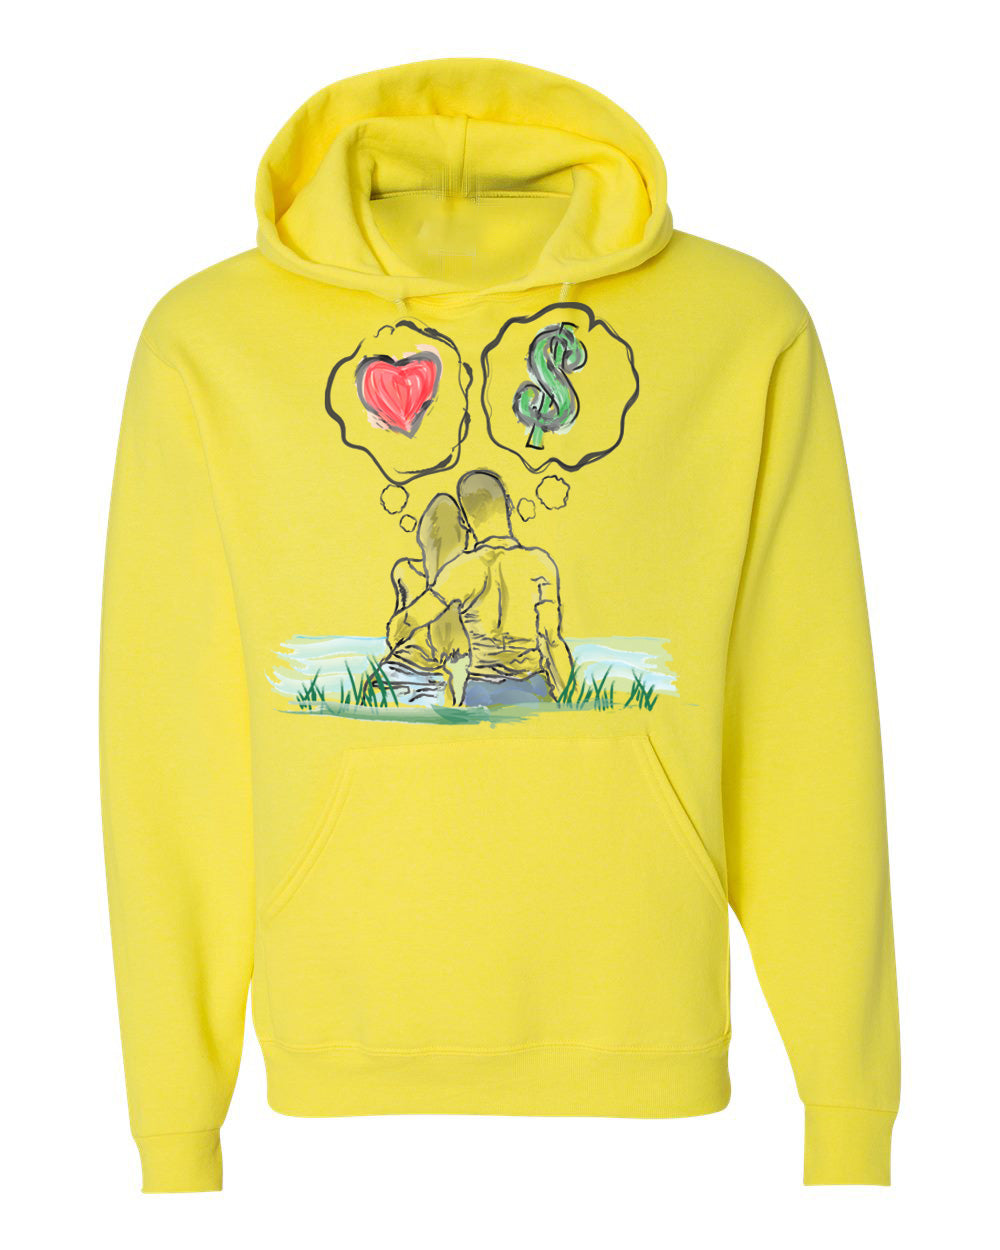 Guy Benson Collection Love Vs Money Hoodie -Neon Yellow